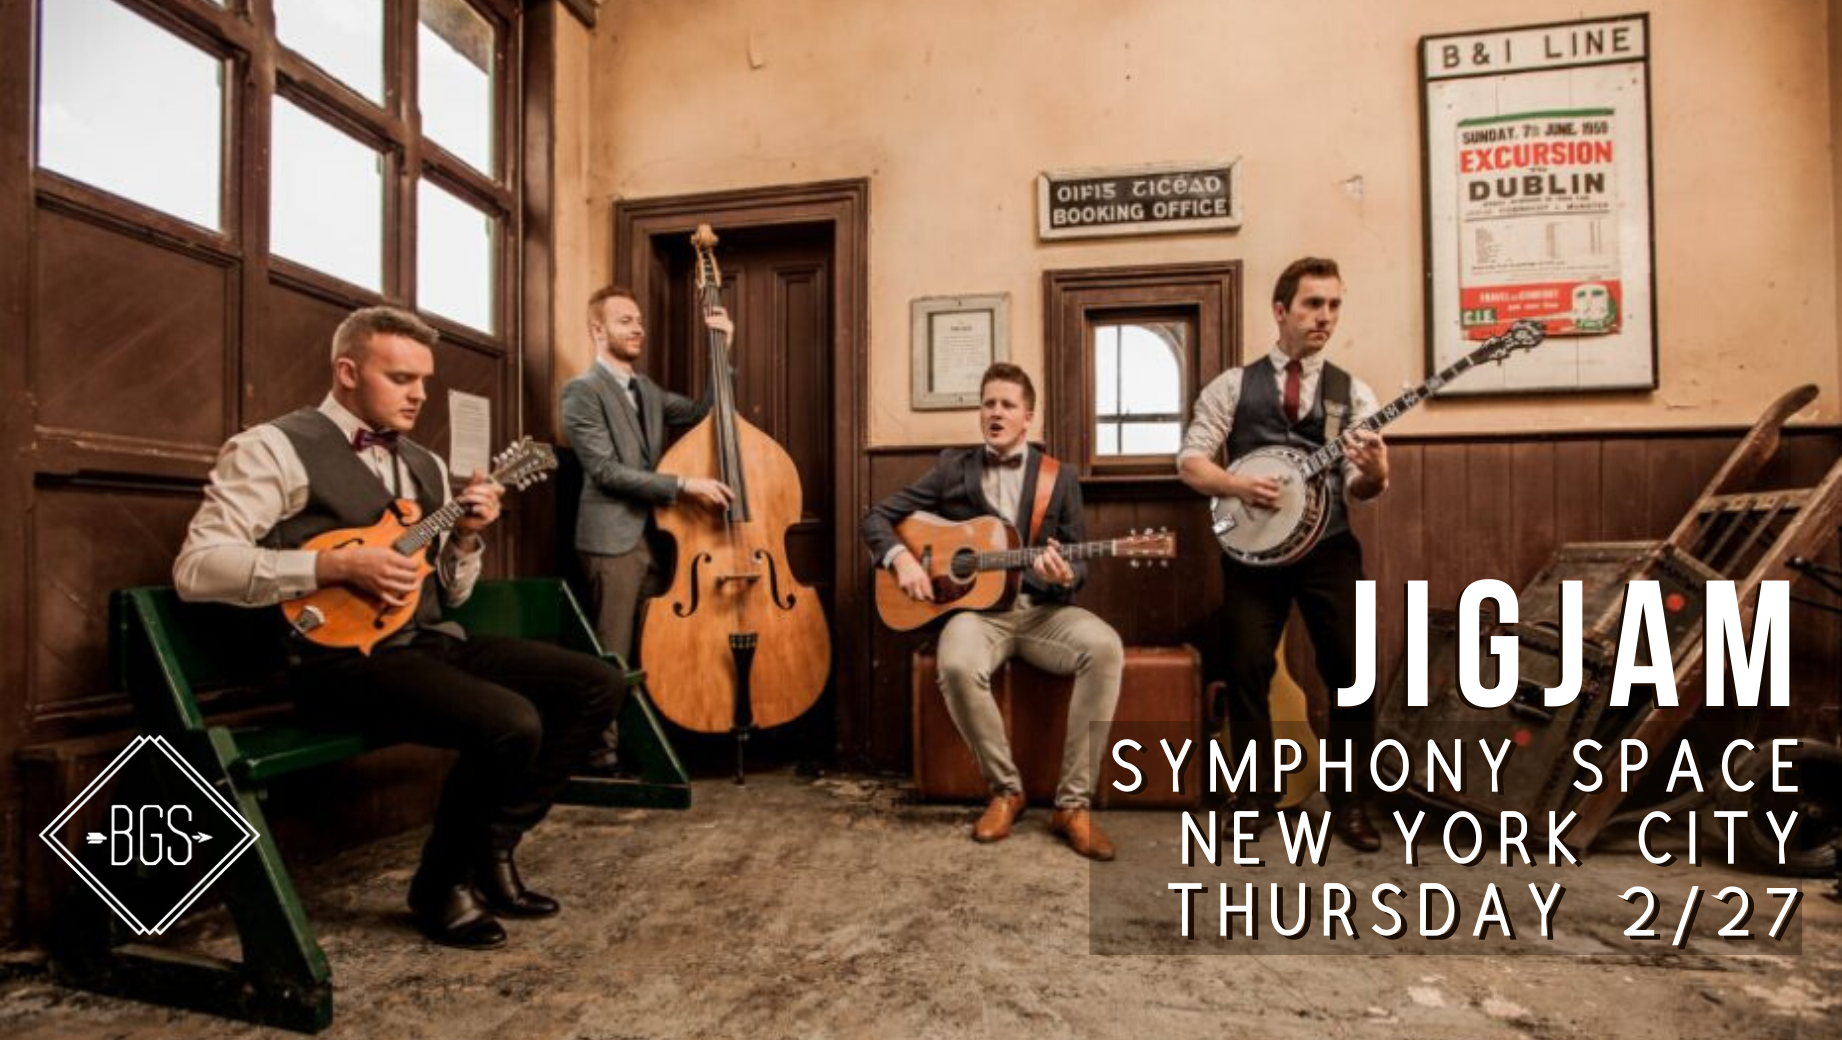 GIVEAWAY - Win Tickets to JigJam at Symphony Space (NYC) 2/27